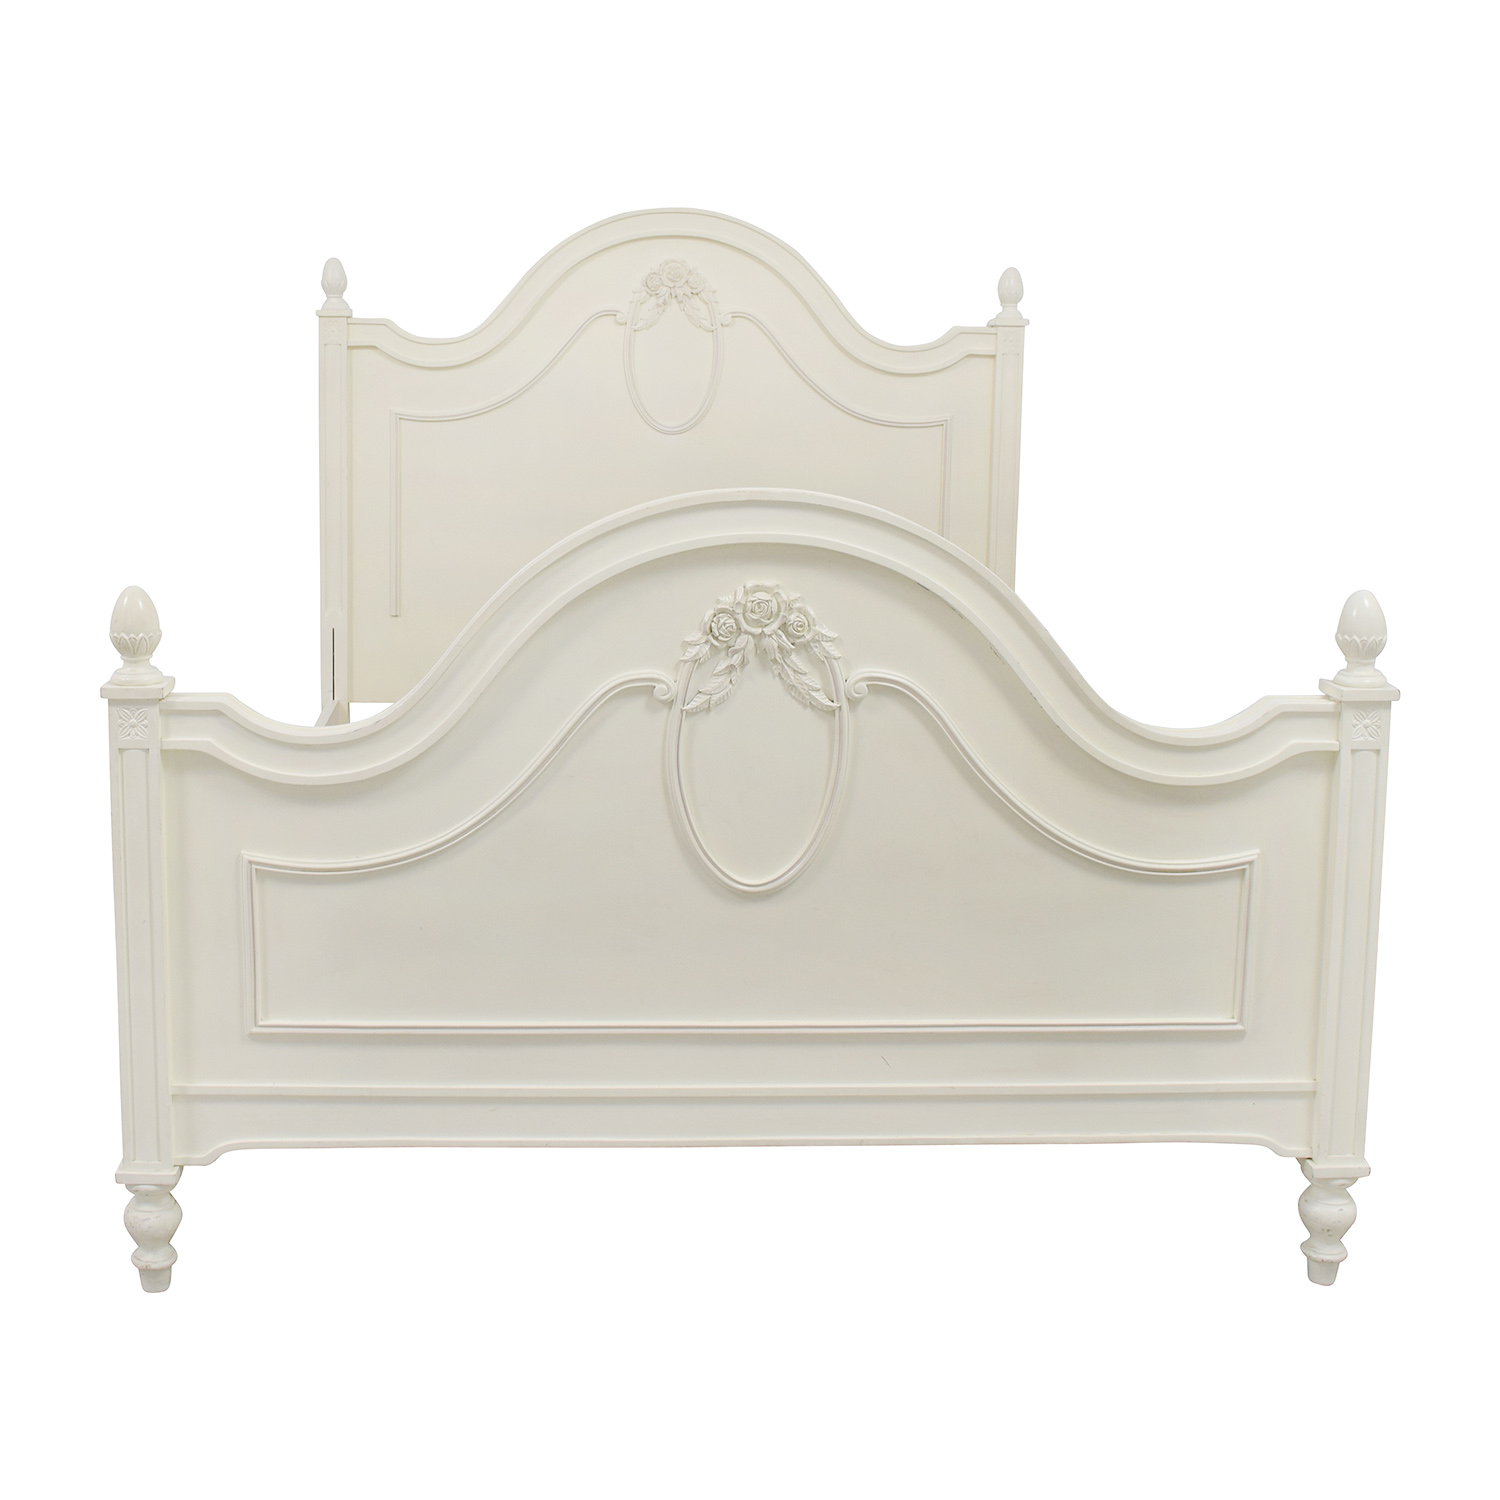 Stanley Furniture Isabella Cameo White Low Post Full Bed Frames